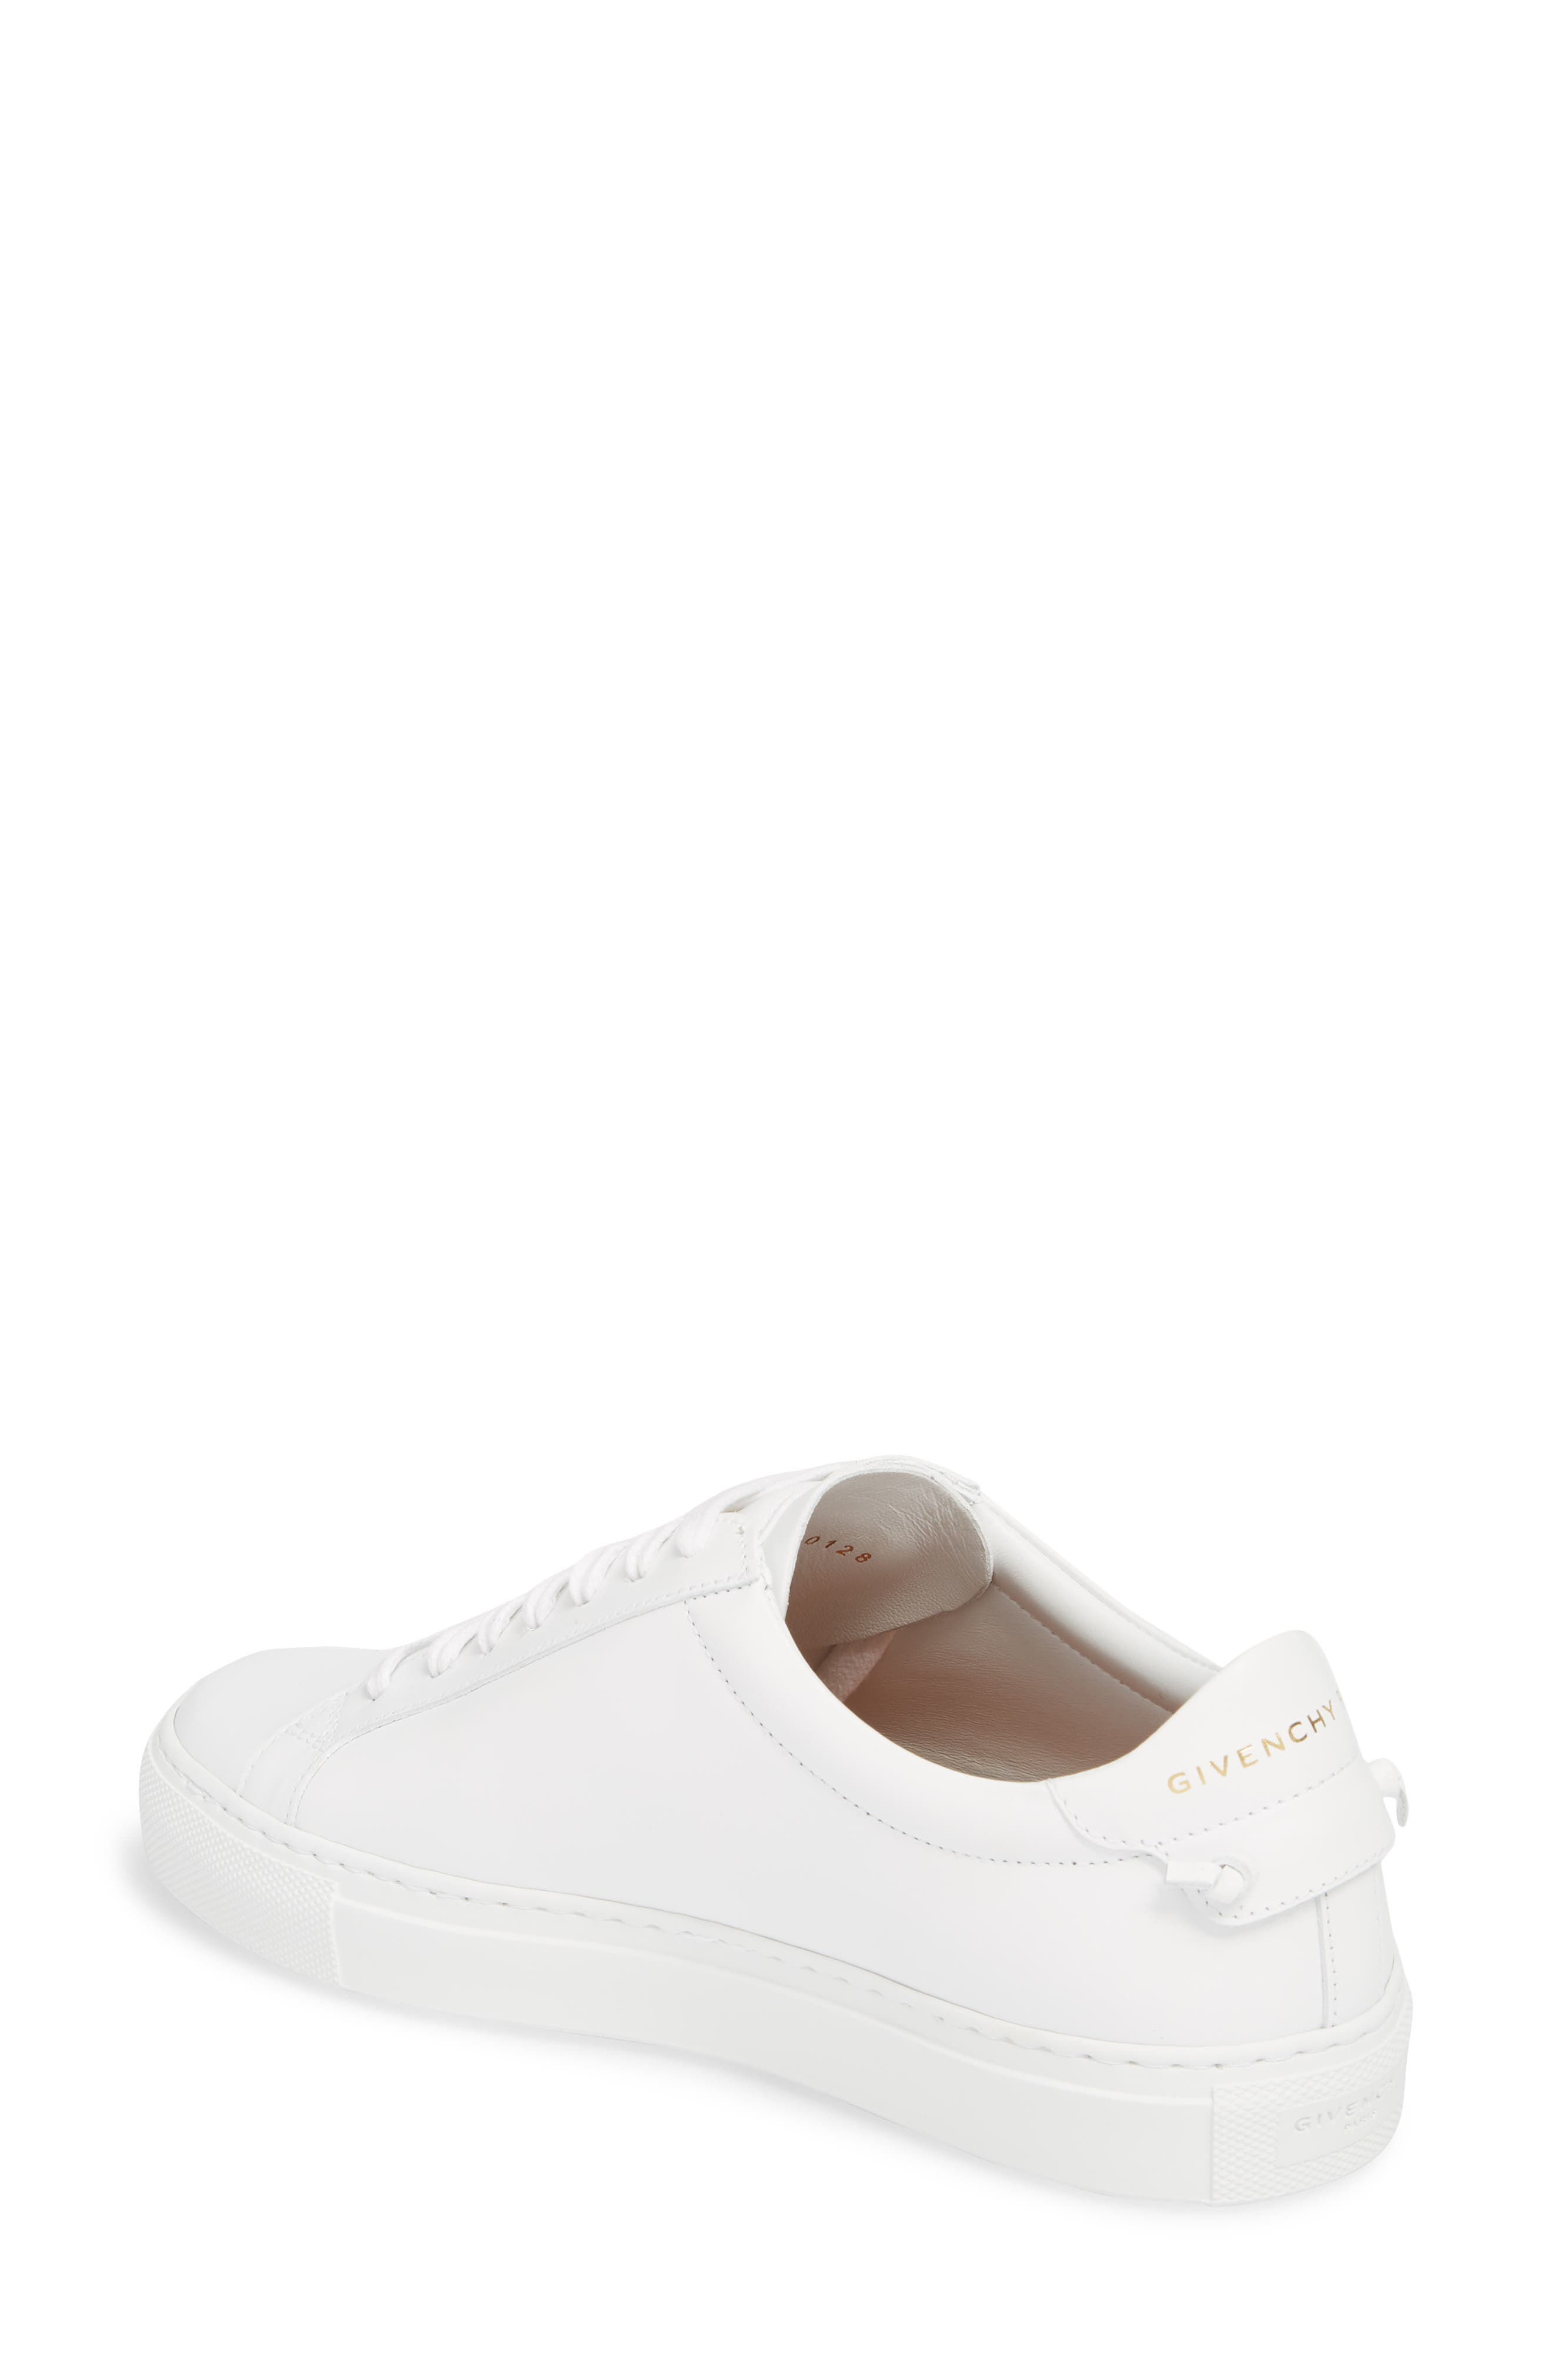 Alternate Image 2  - Givenchy Low Top Sneaker (Women)